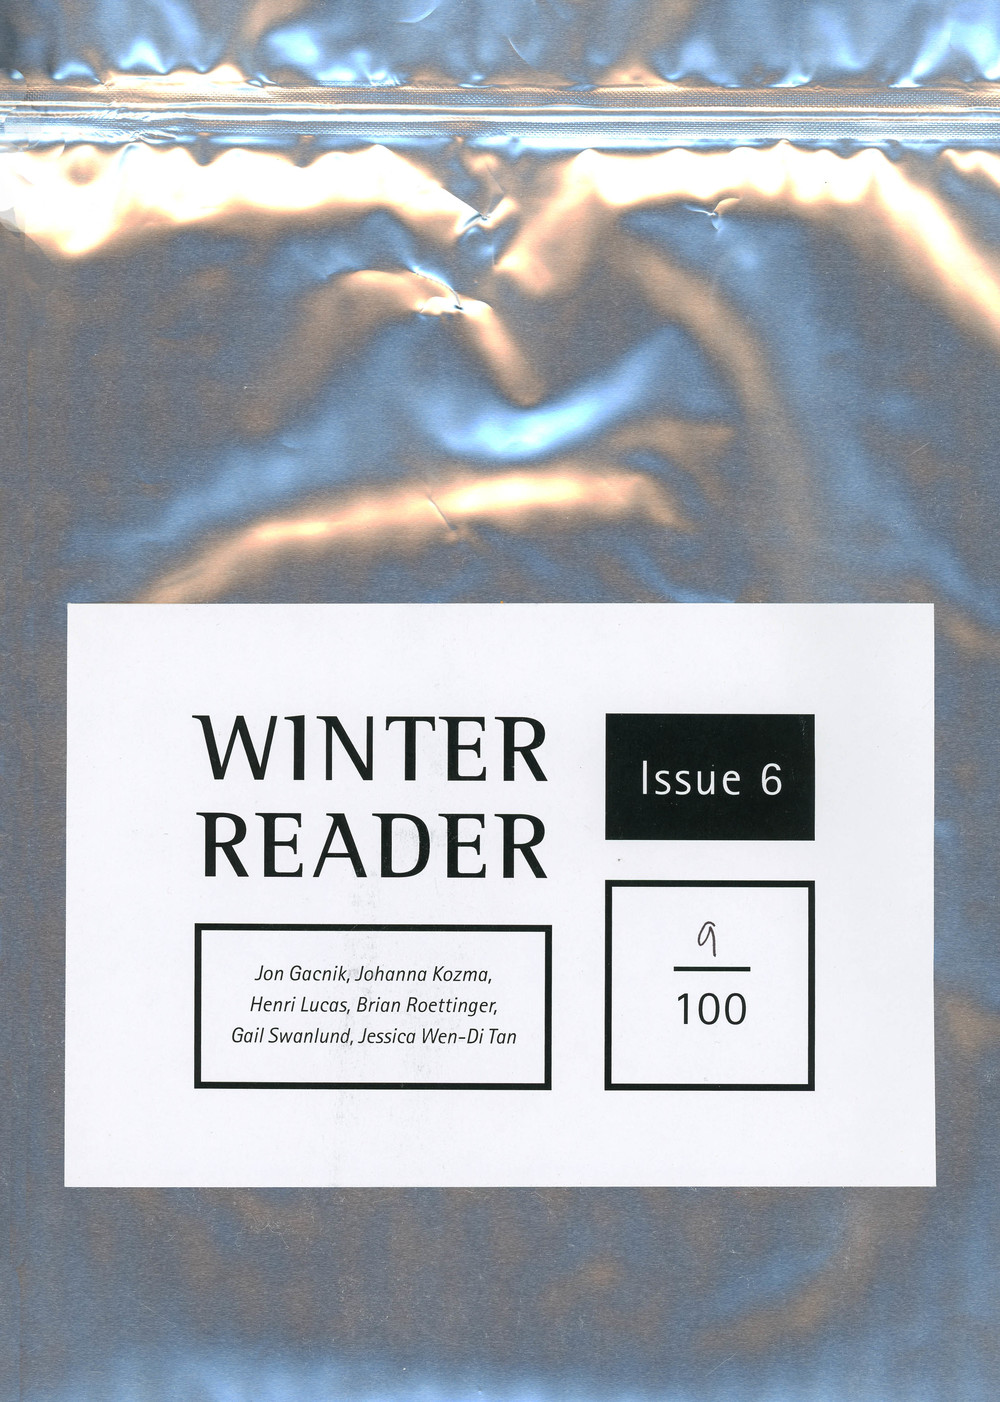 Winter 13, Issue 6